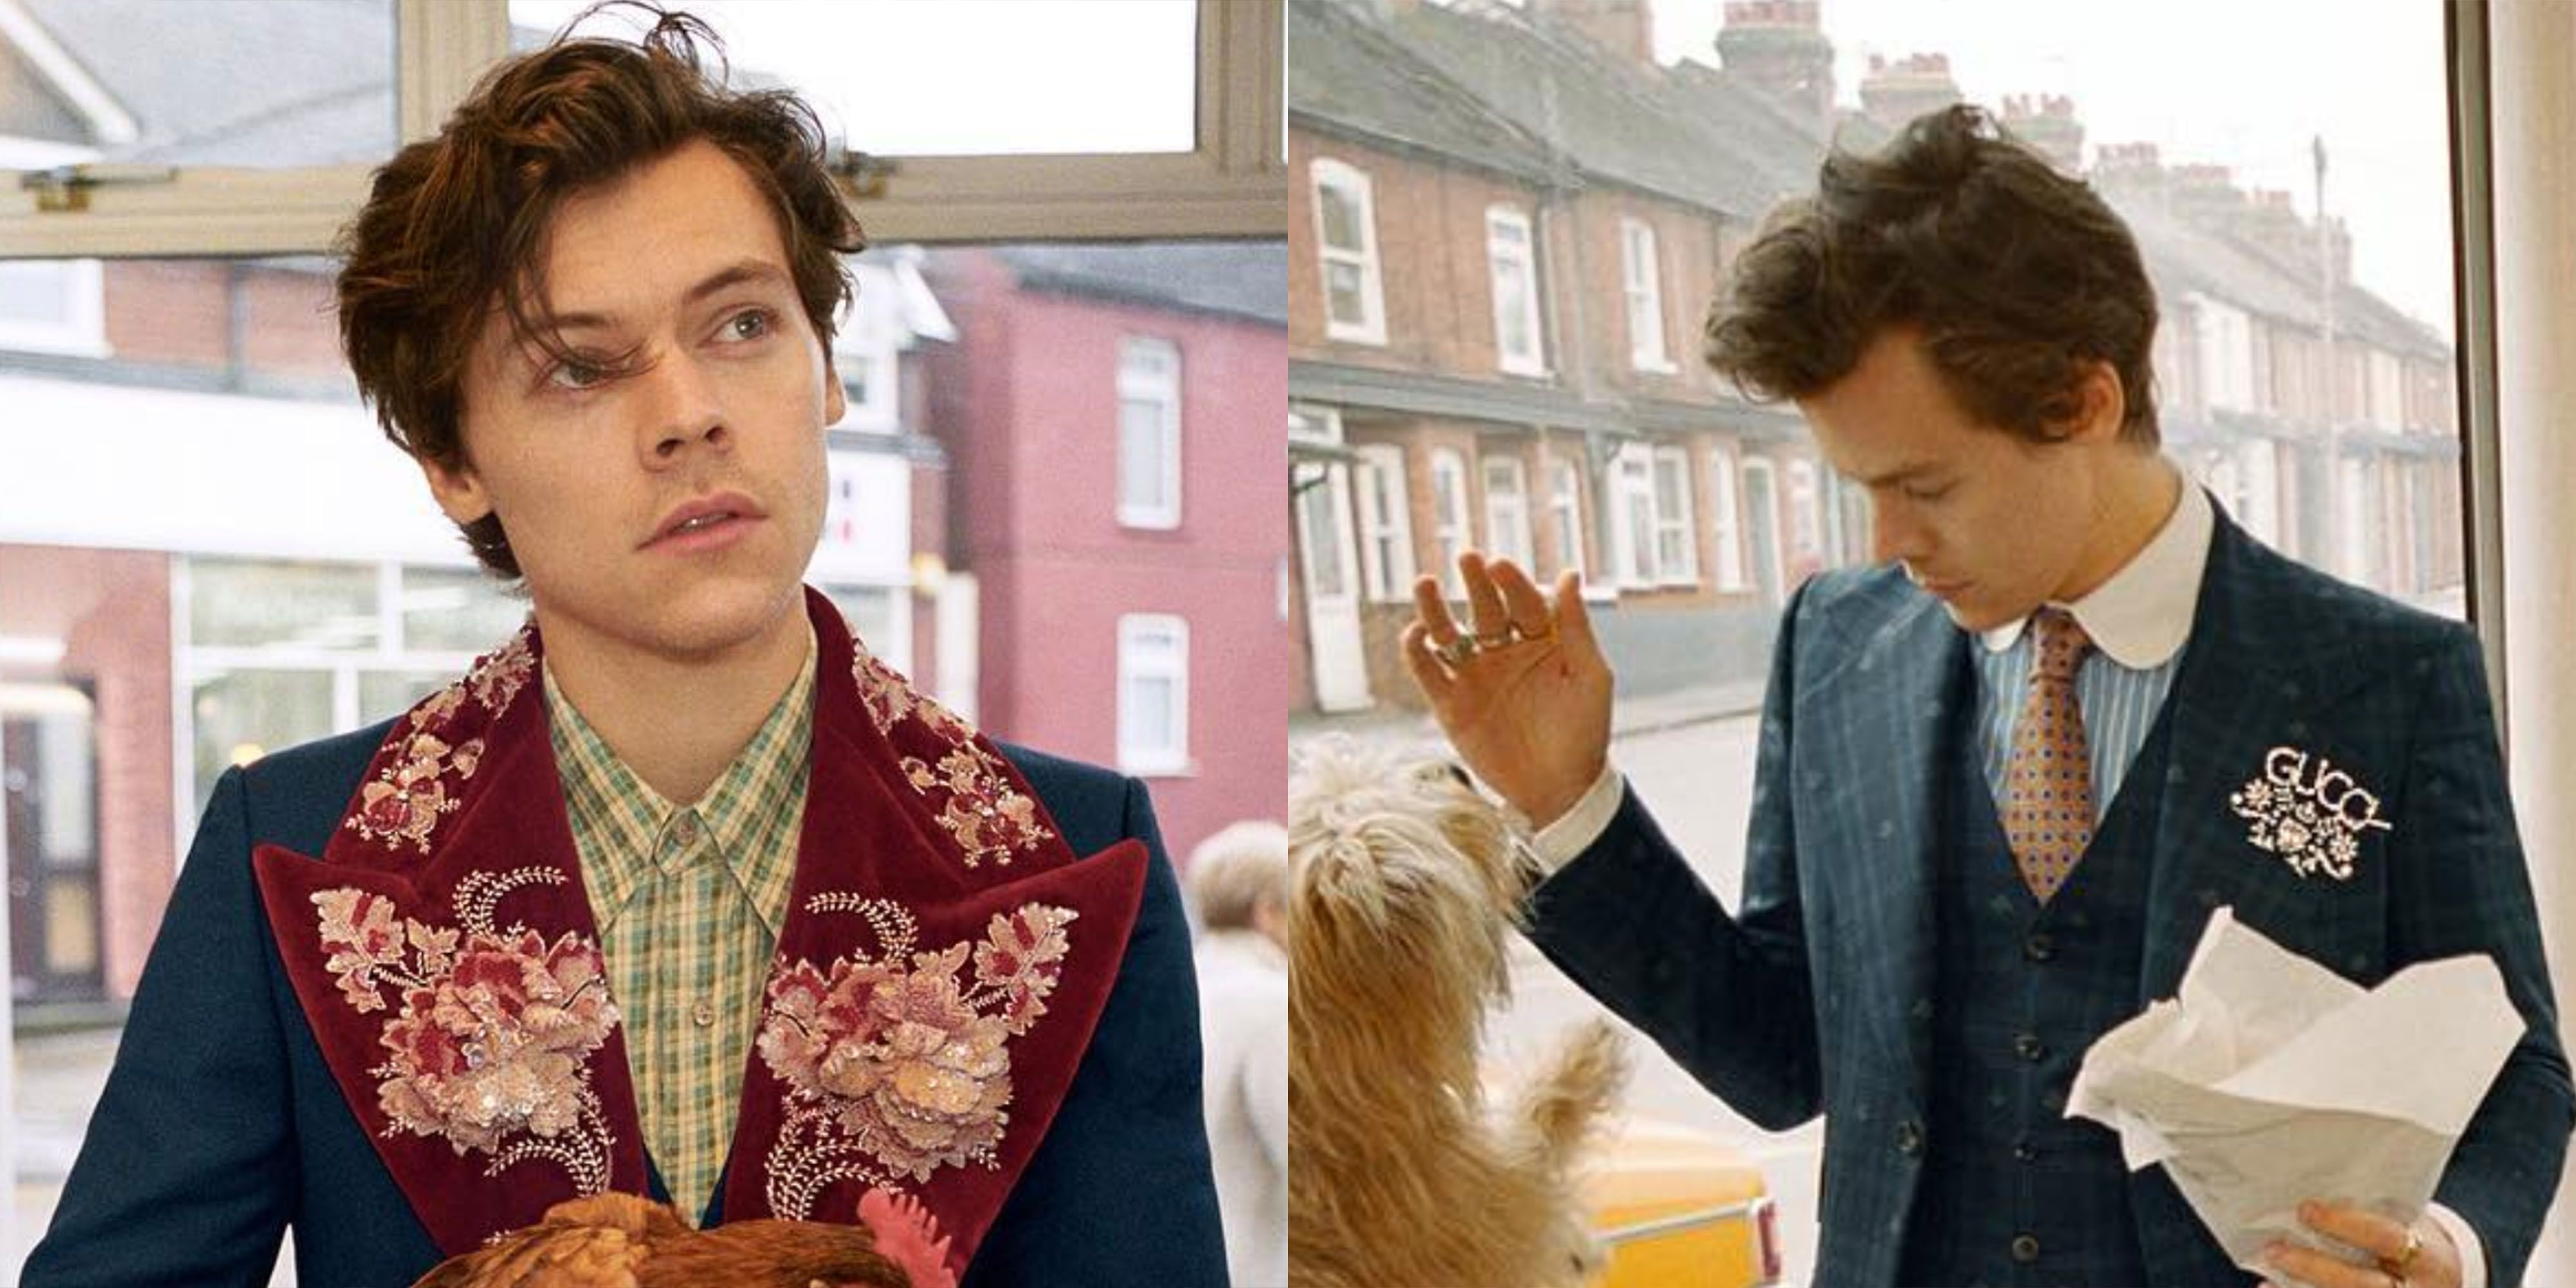 bfe1ed55491 Harry Styles New Gucci Tailoring Campaign Pictures - Harry Styles Gucci  Campaign